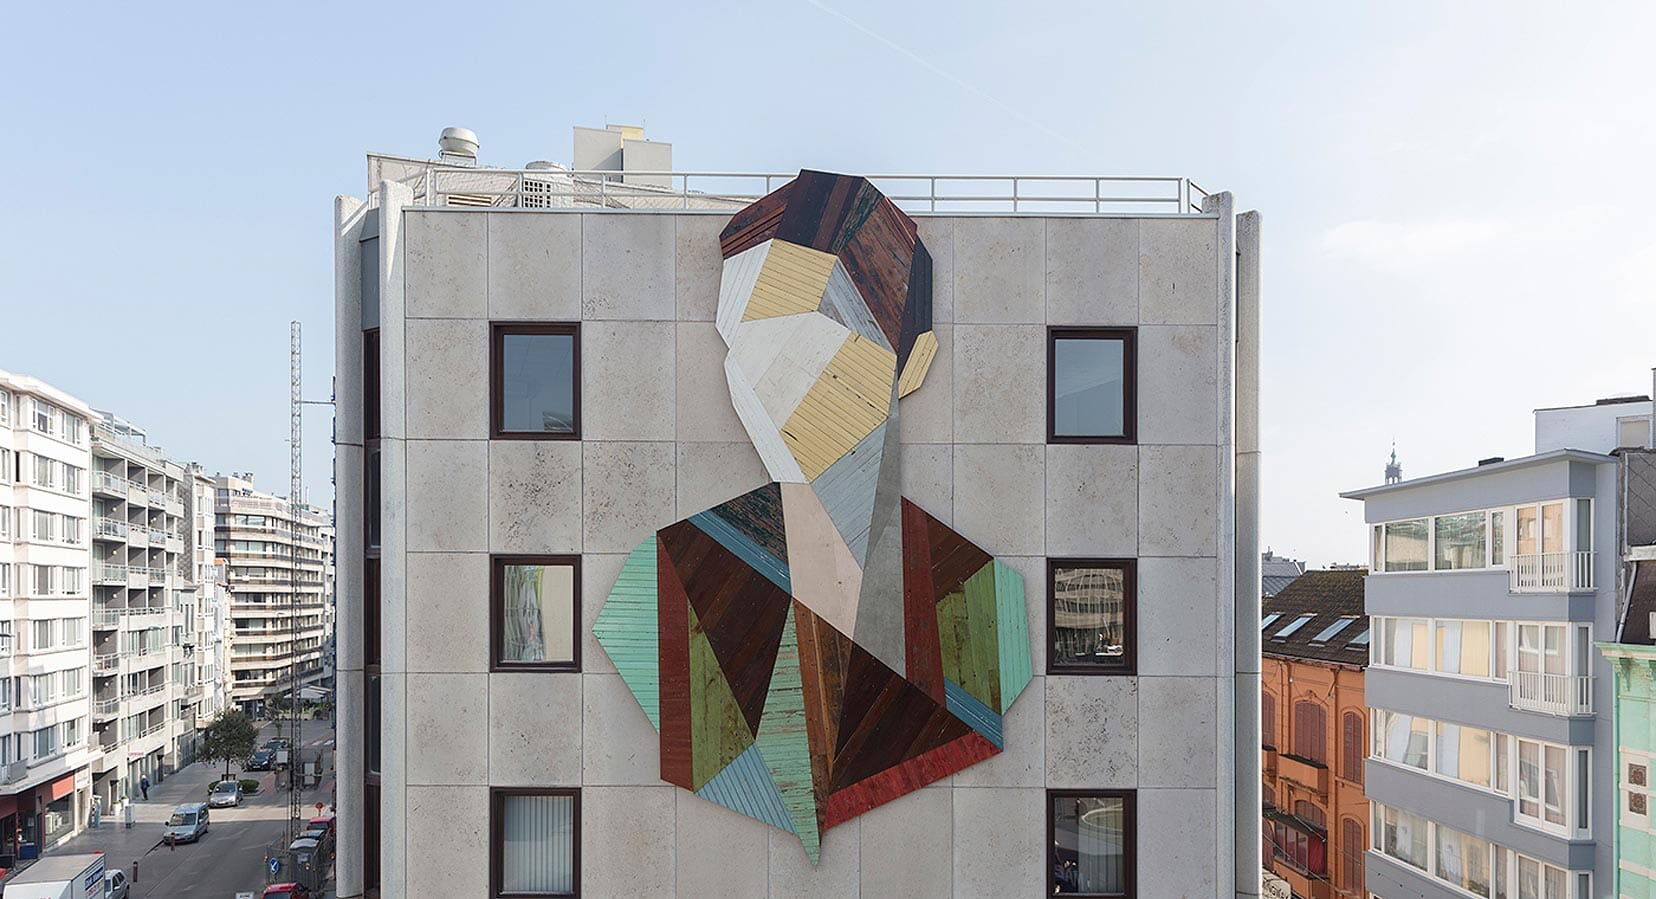 Strook Constructs Giant Geometric Portraits From Reclaimed Wood